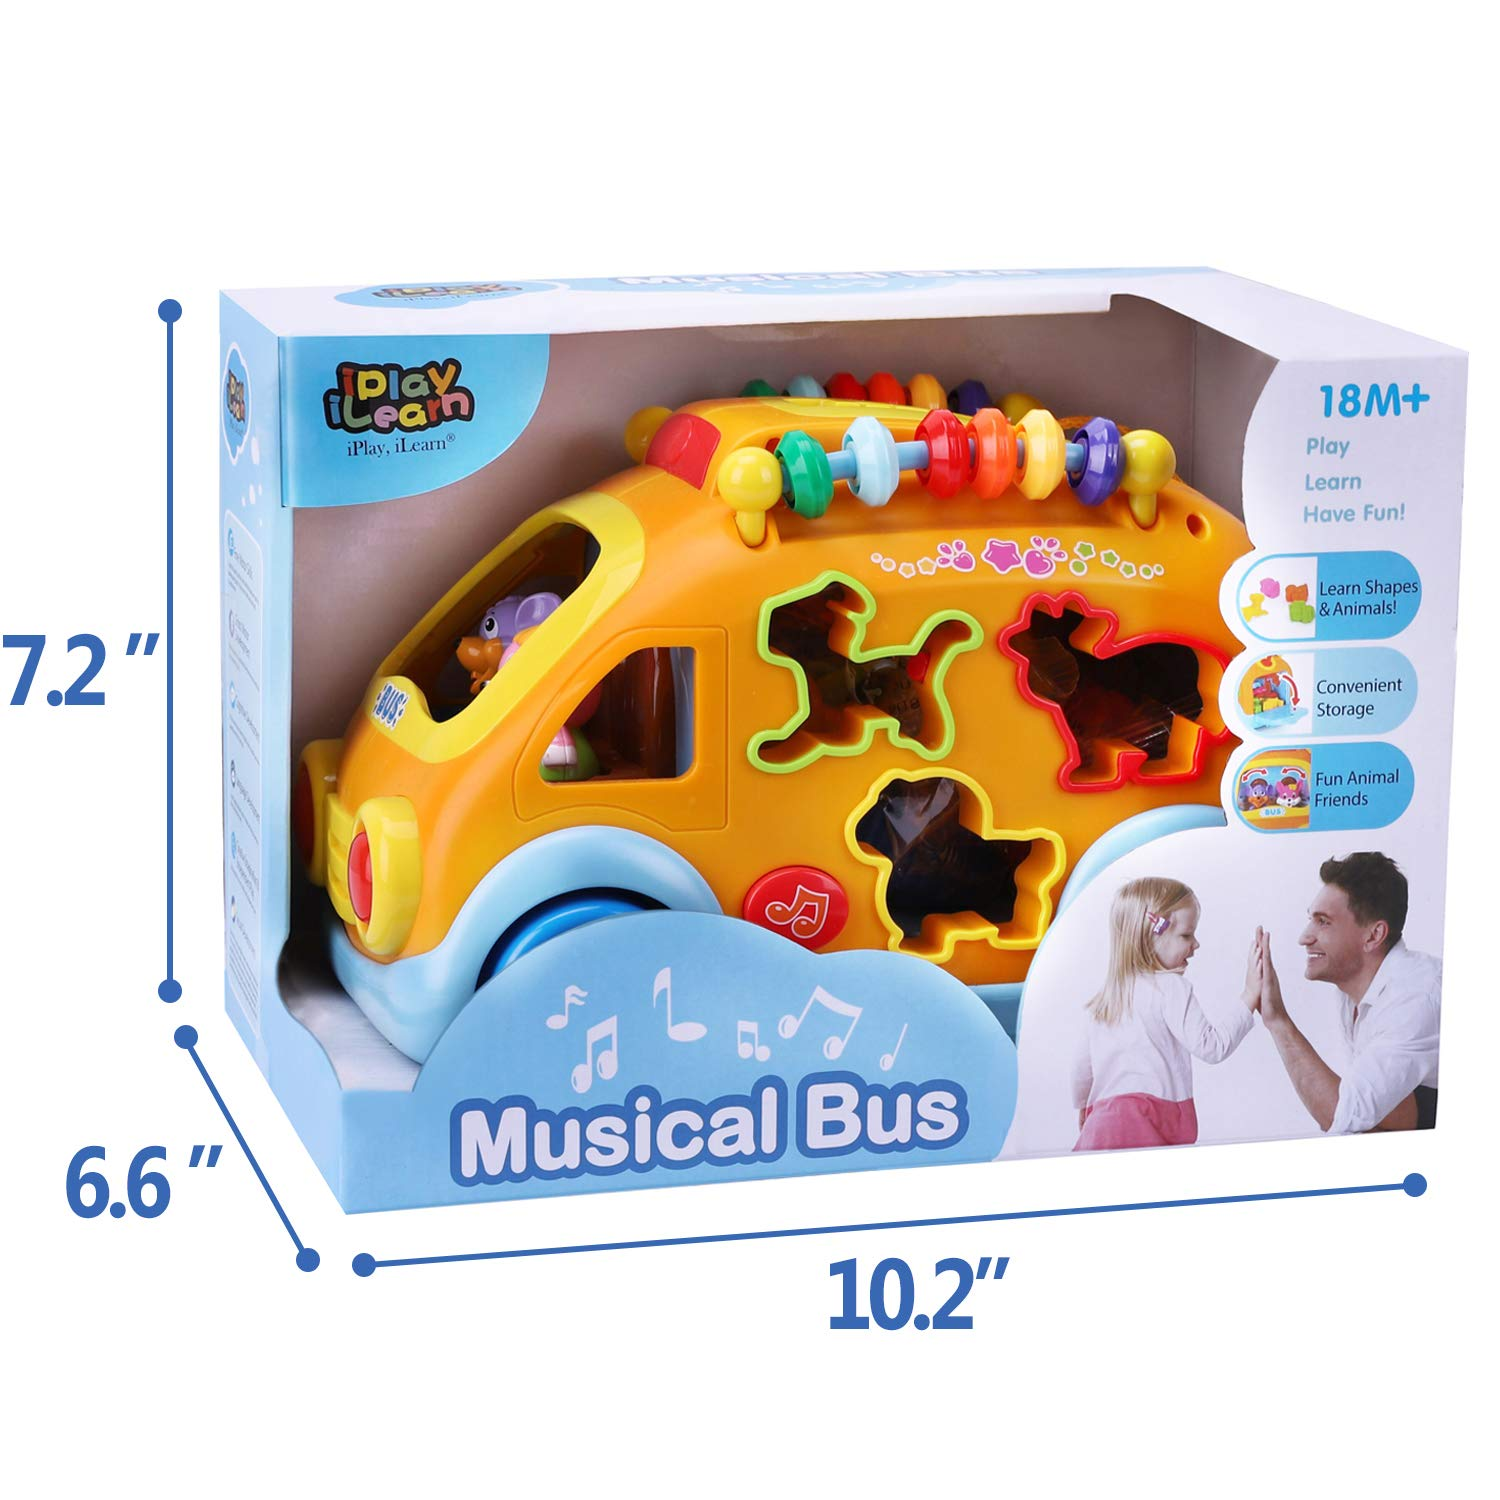 iPlay, iLearn Electronic Musical Bus, Baby Sensory Toy, 3D Animal Matching Car w/ Gear, Early Development, Learning, Educational Gift for 1, 2 Year Olds Girls Boys Toddlers Kids by iPlay, iLearn (Image #6)